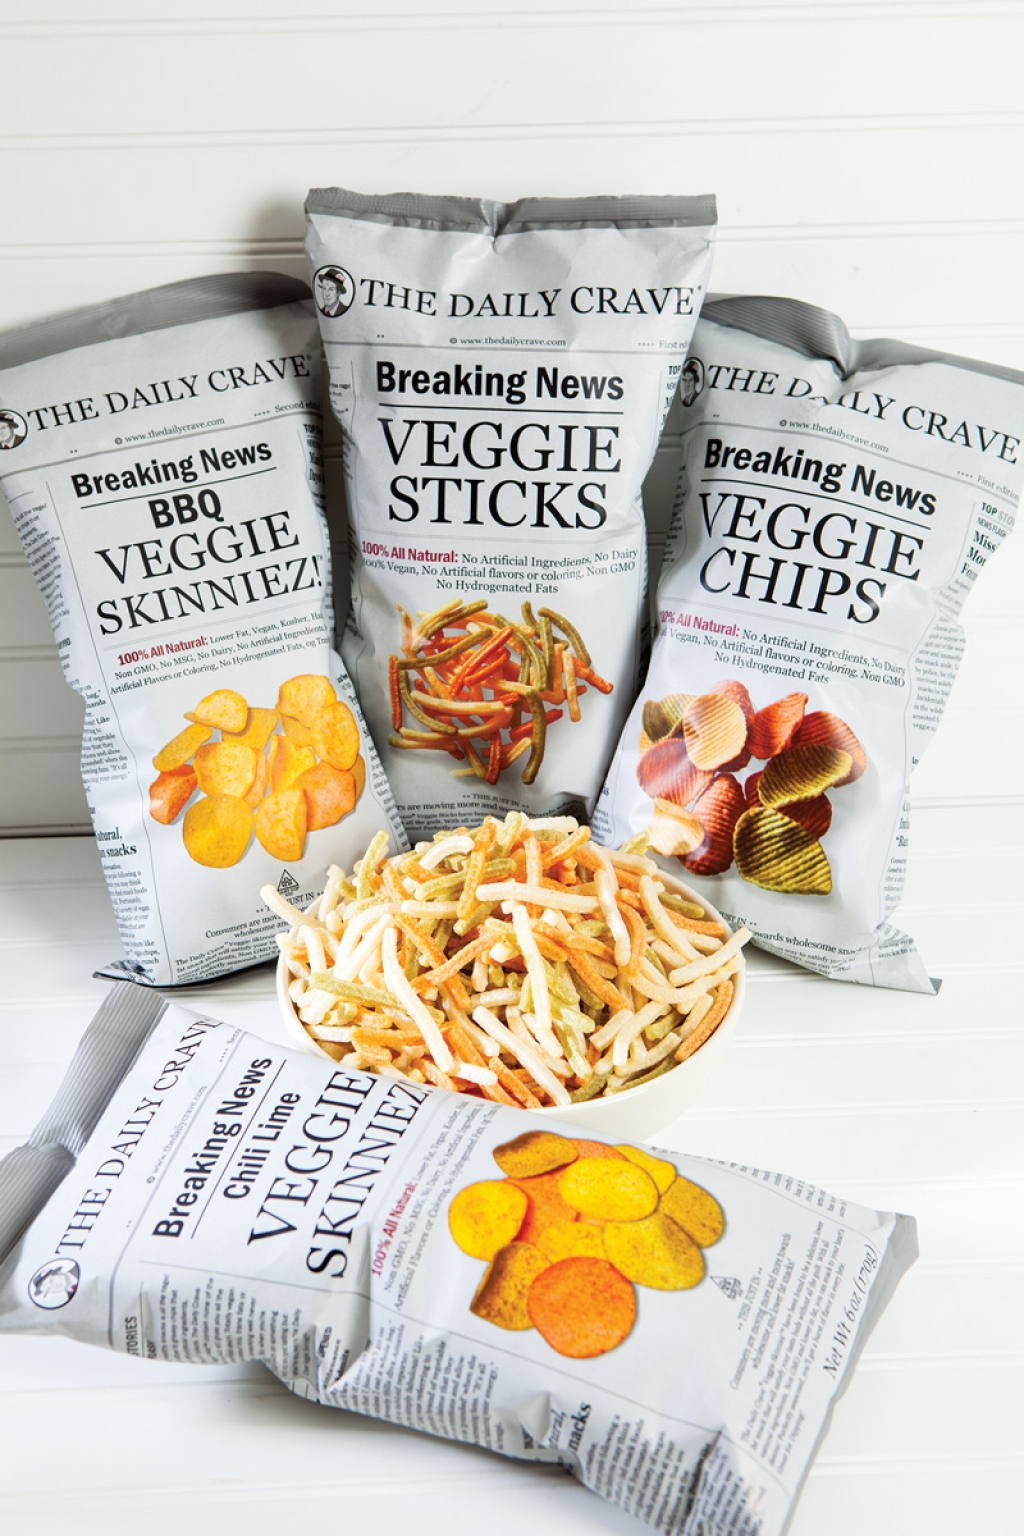 Veggie Chips, Veggie Sticks and Skinniez